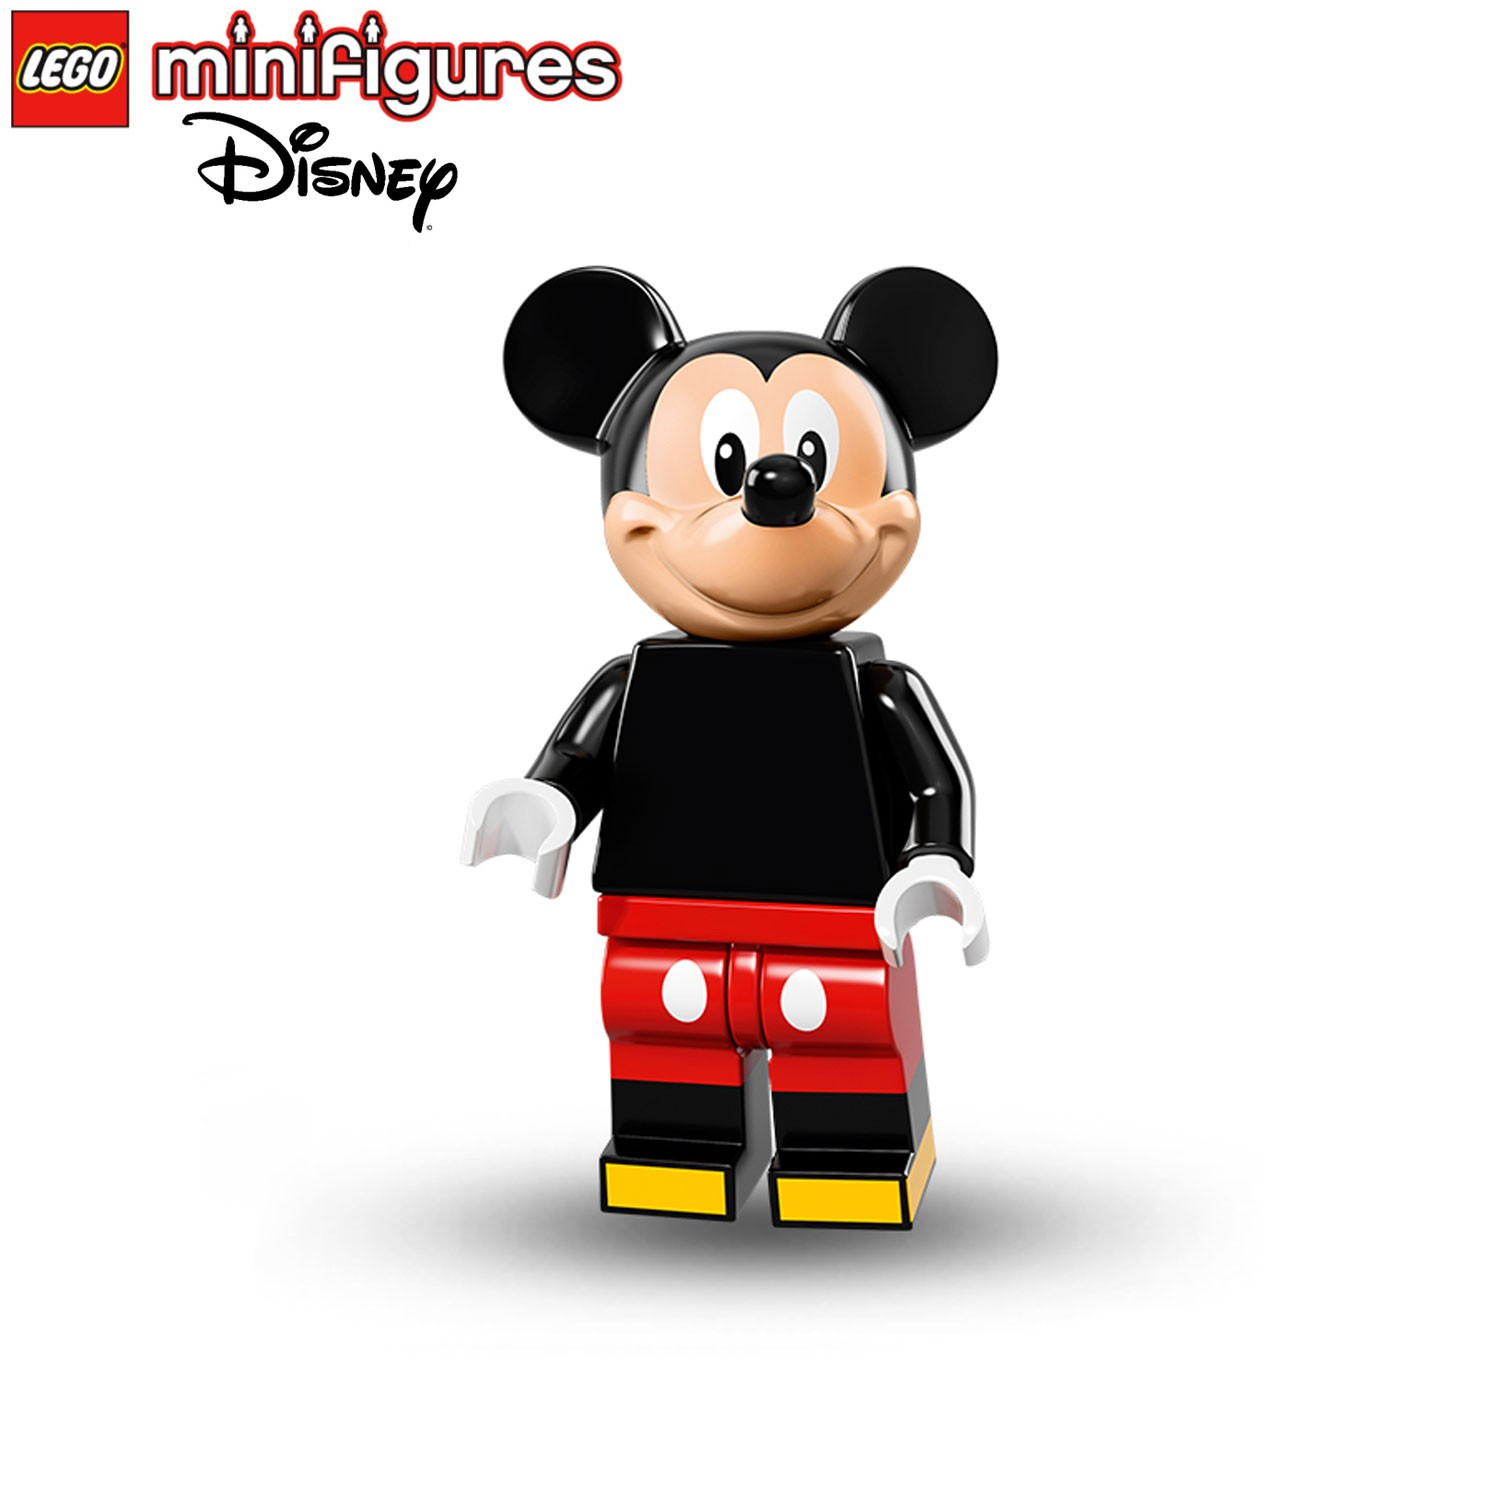 lego mini figures disney serie 1 figura scelta 71012 choose figure minifigures ebay. Black Bedroom Furniture Sets. Home Design Ideas